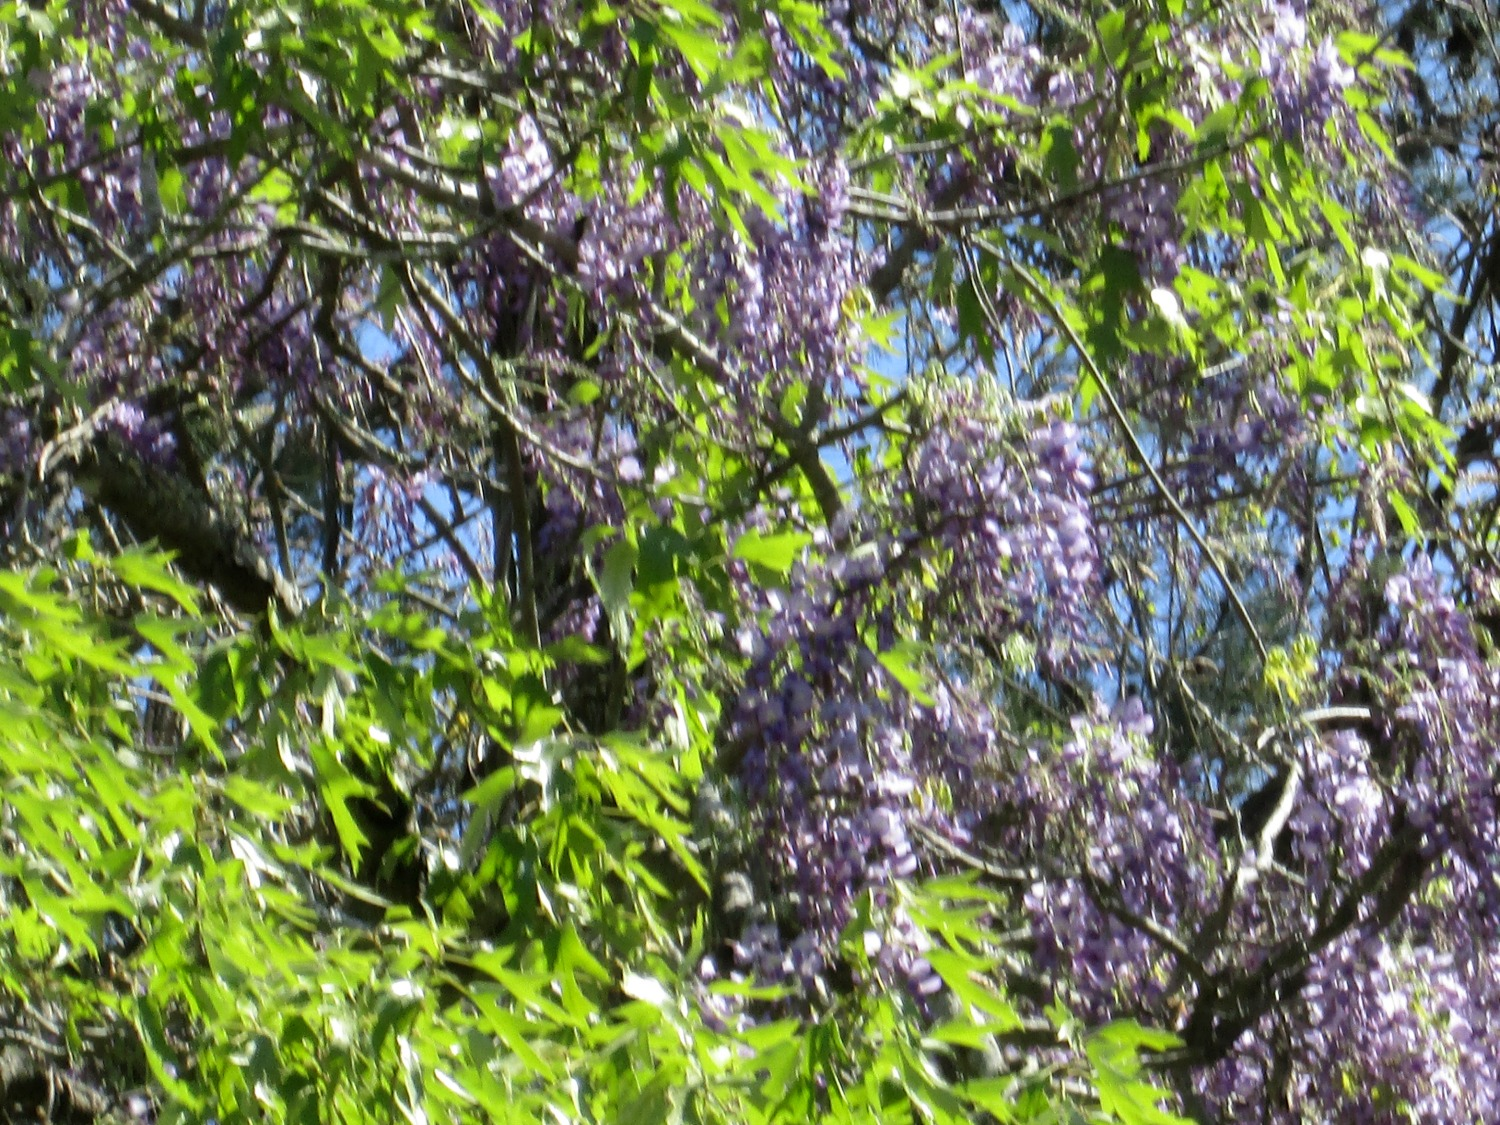 The wisteria is showing off on the fence, in the trees and along the roadside here in our yard.